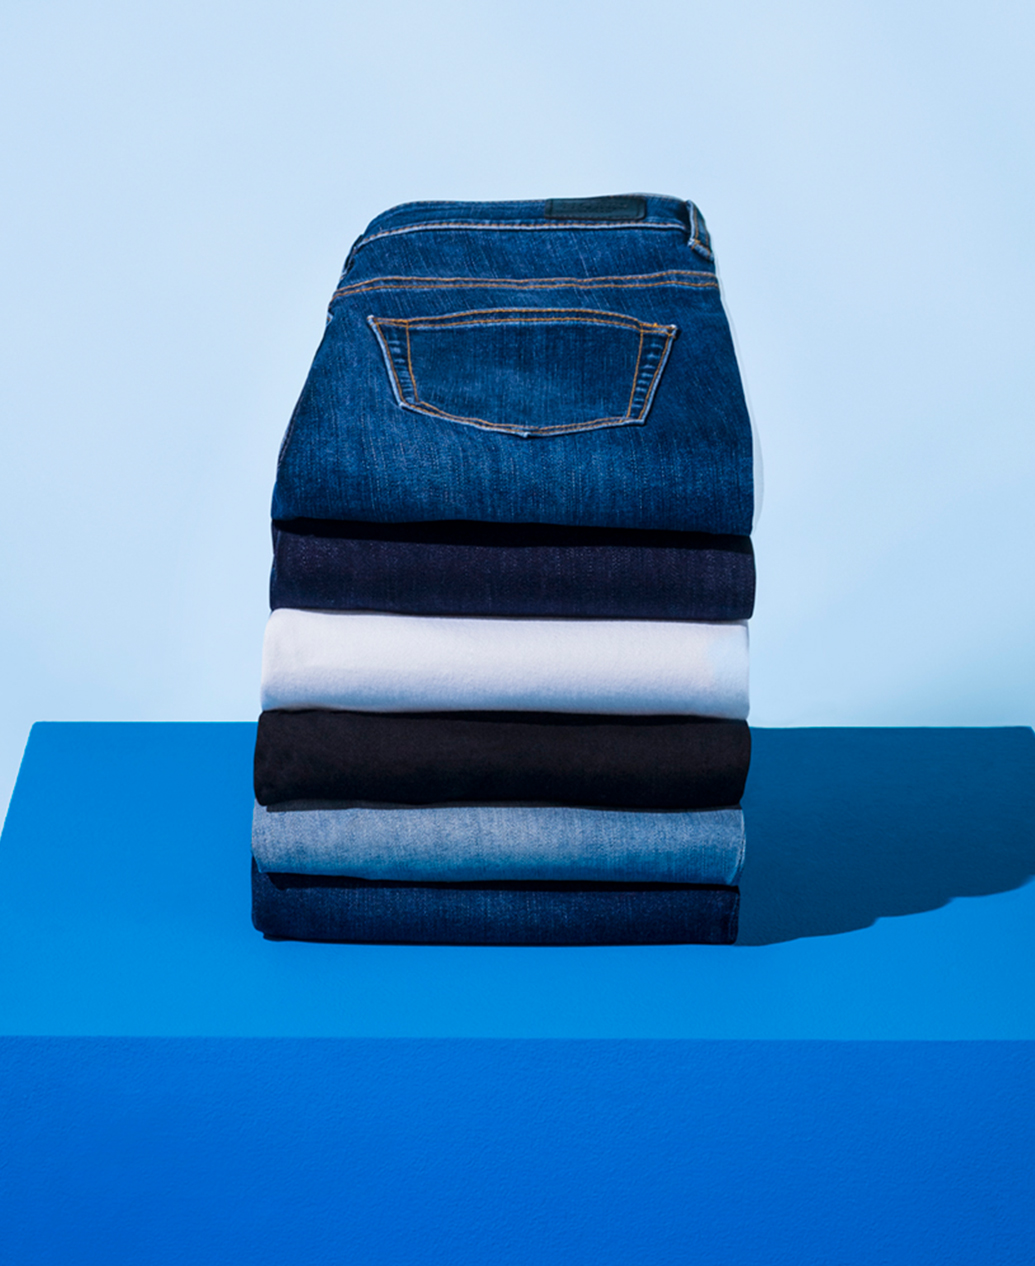 A stack of different shade of denim sit on a blue plinth